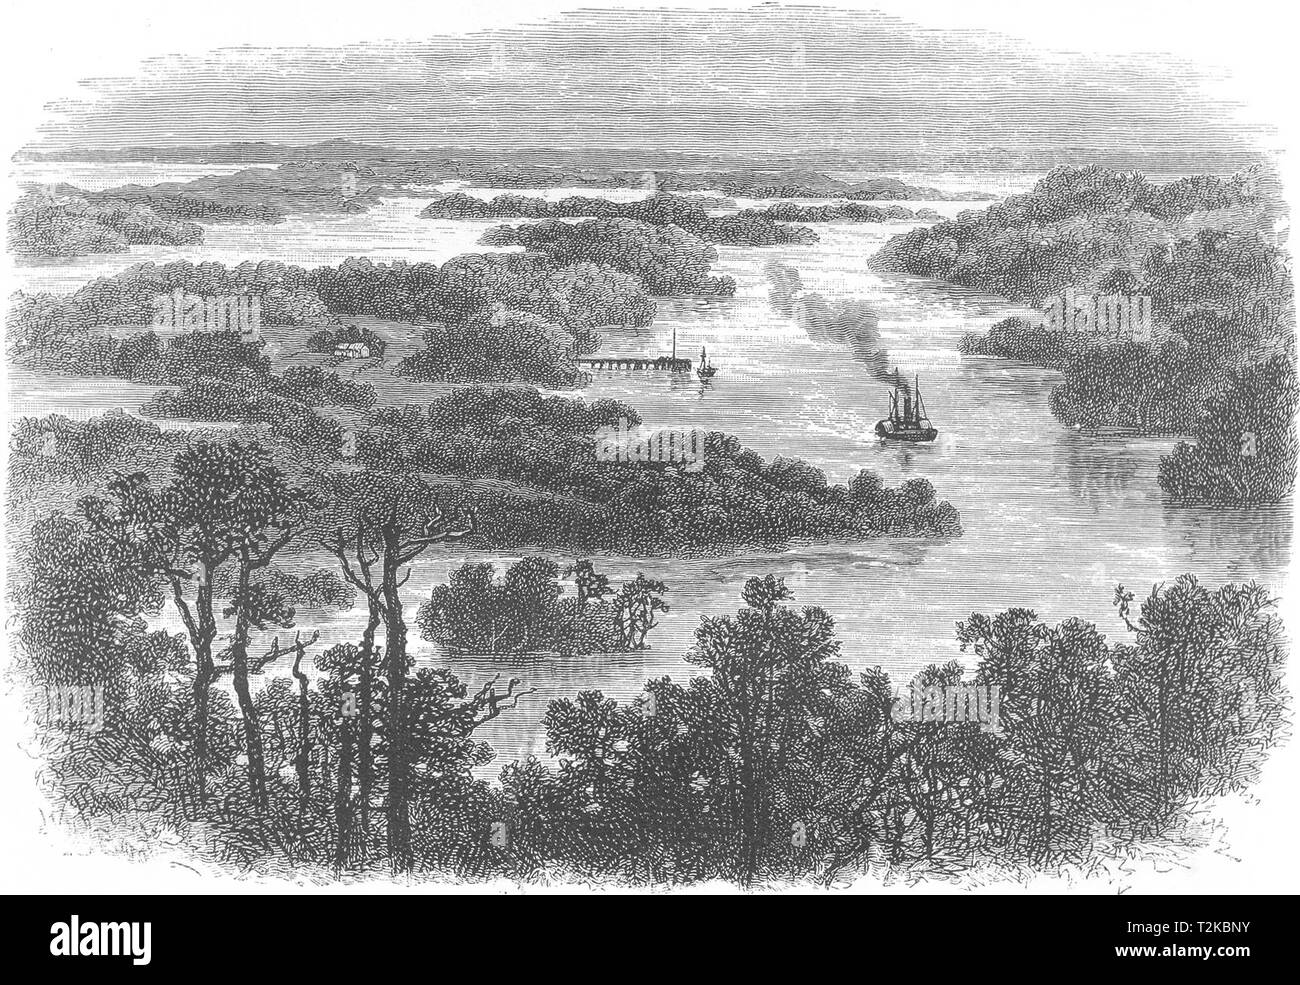 AUSTRALIA. Junction of Murray and Darling Rivers 1886 old antique print - Stock Image